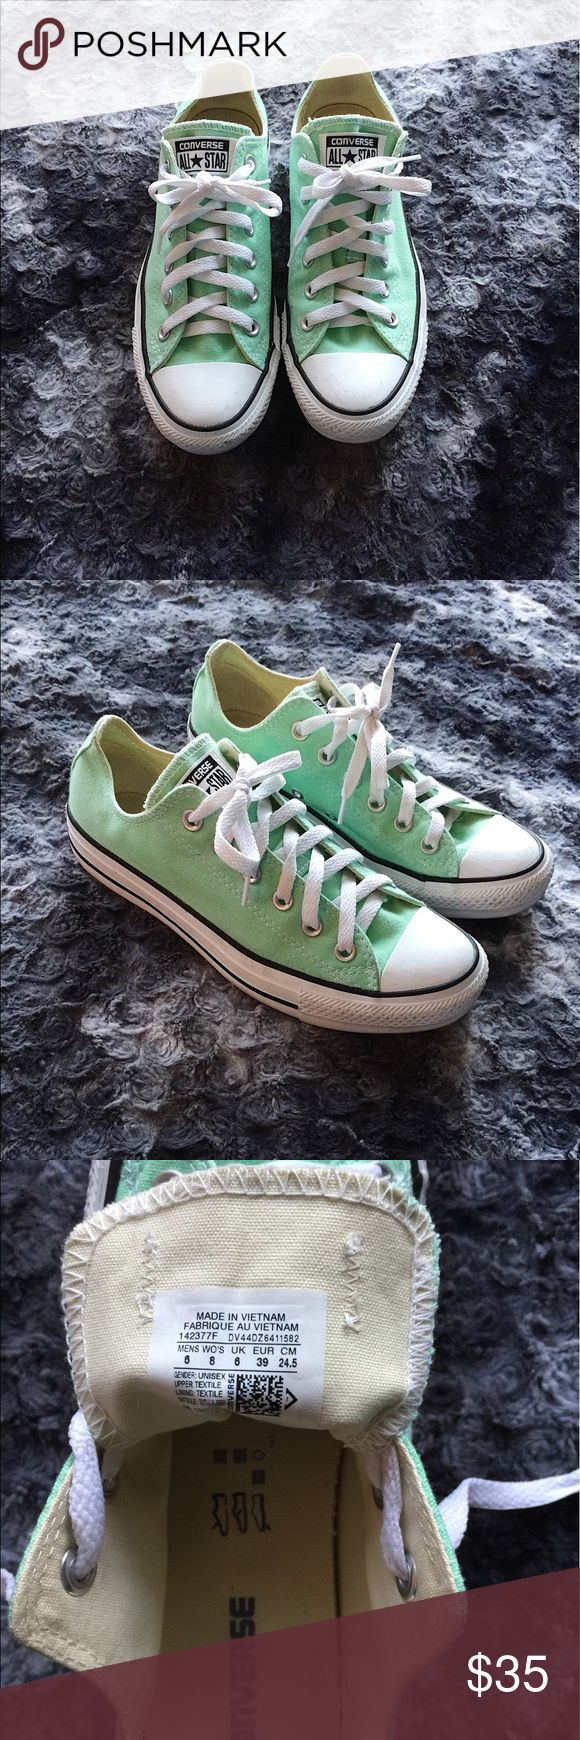 ‼️Price Drop‼️Mint Converse!! Perfect color for spring and summer! I only wore them 3 times! They have a few tiny scuff marks on the toe, but other than that they are like new! Size 8 in women's. Converse Shoes